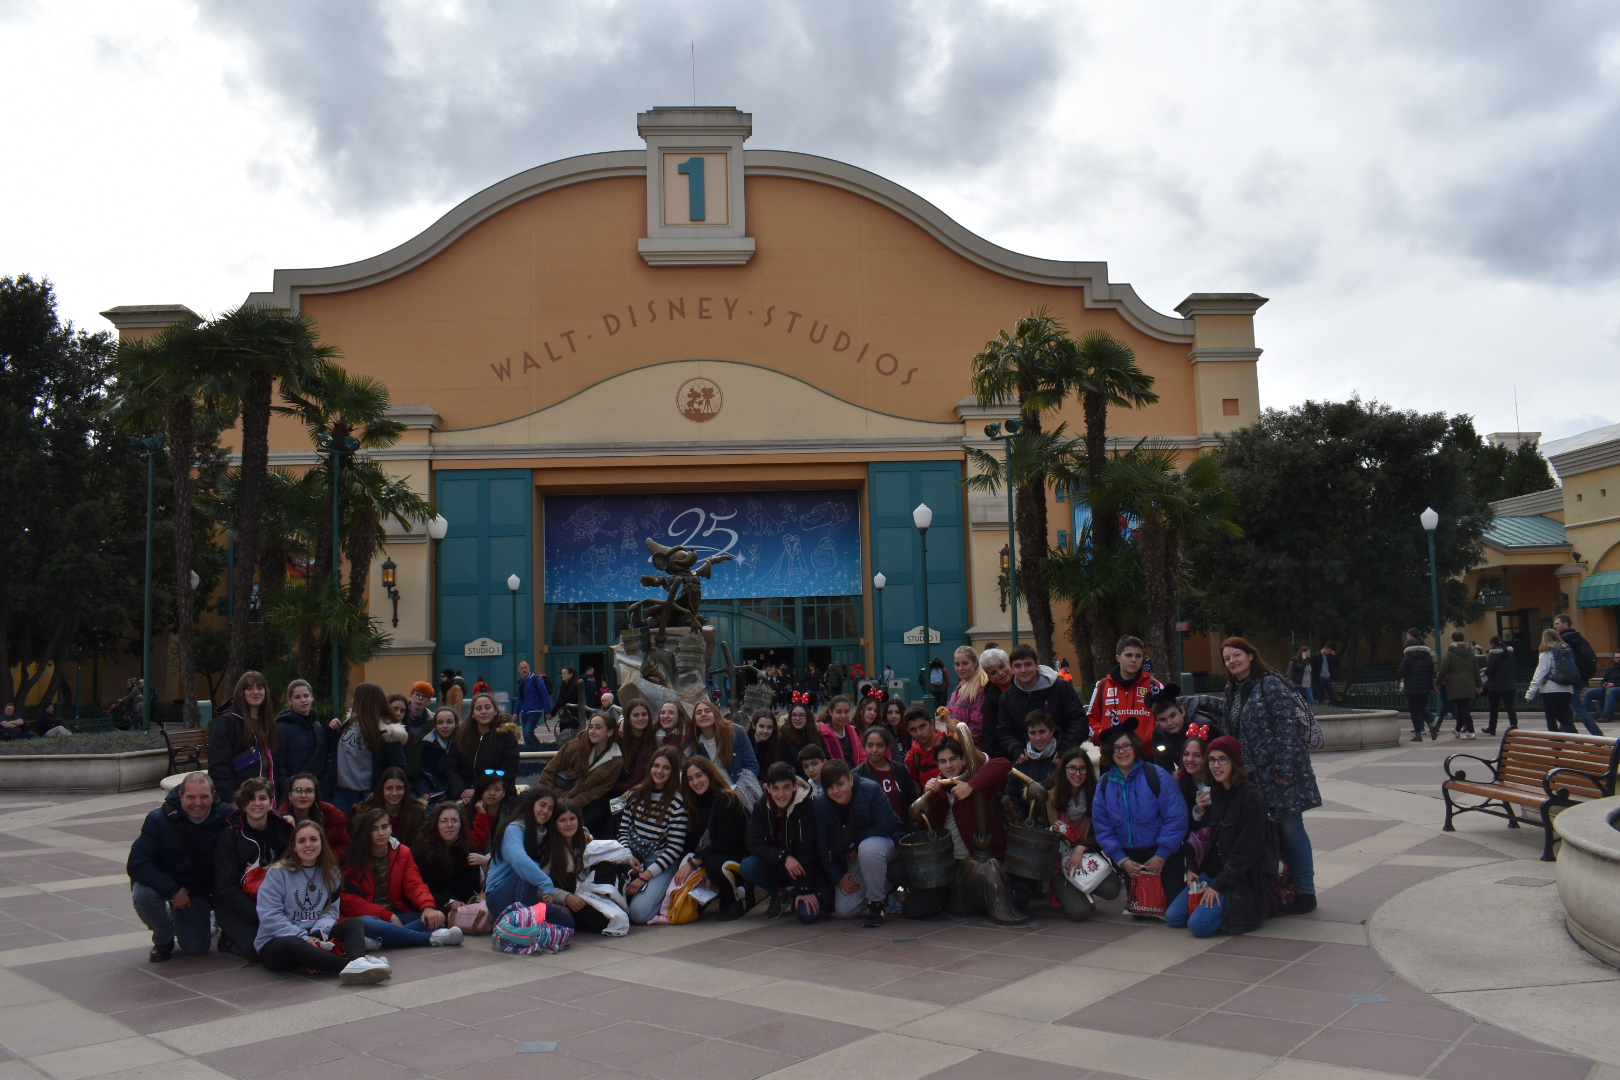 15mar-disneyland-pars-qu-divertido-